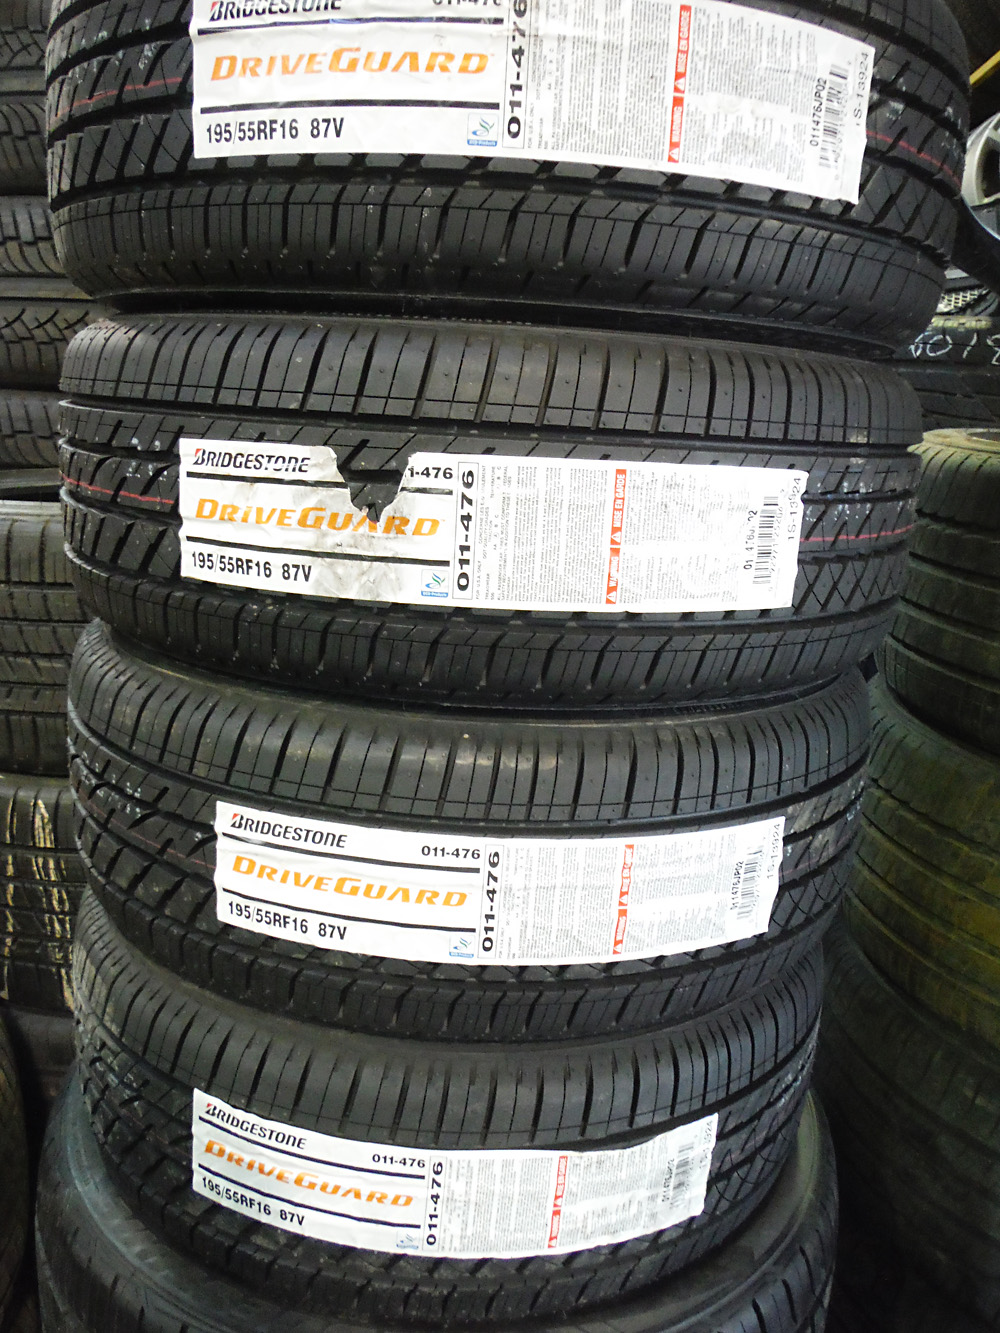 Bridgestone Driveguard 195/55R16 Tires for sale